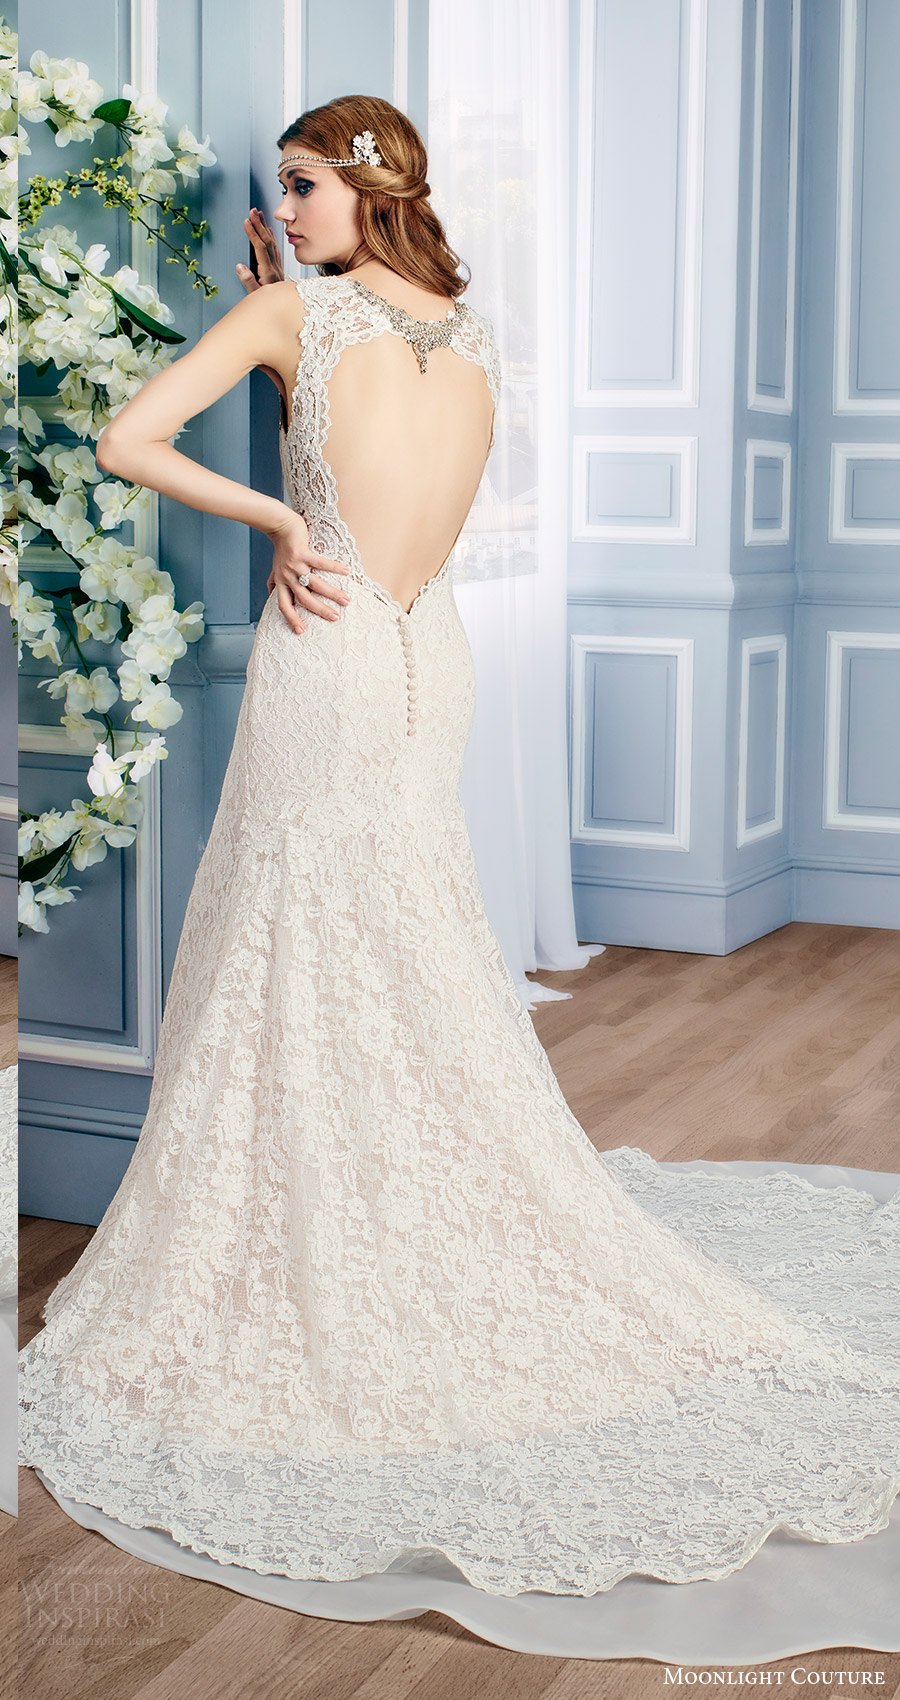 moonlight couture bridal fall 2016 sleeveless sweetheart beaded neckline thick straps lace mermaid wedding dress (h1313) bv train keyhole train